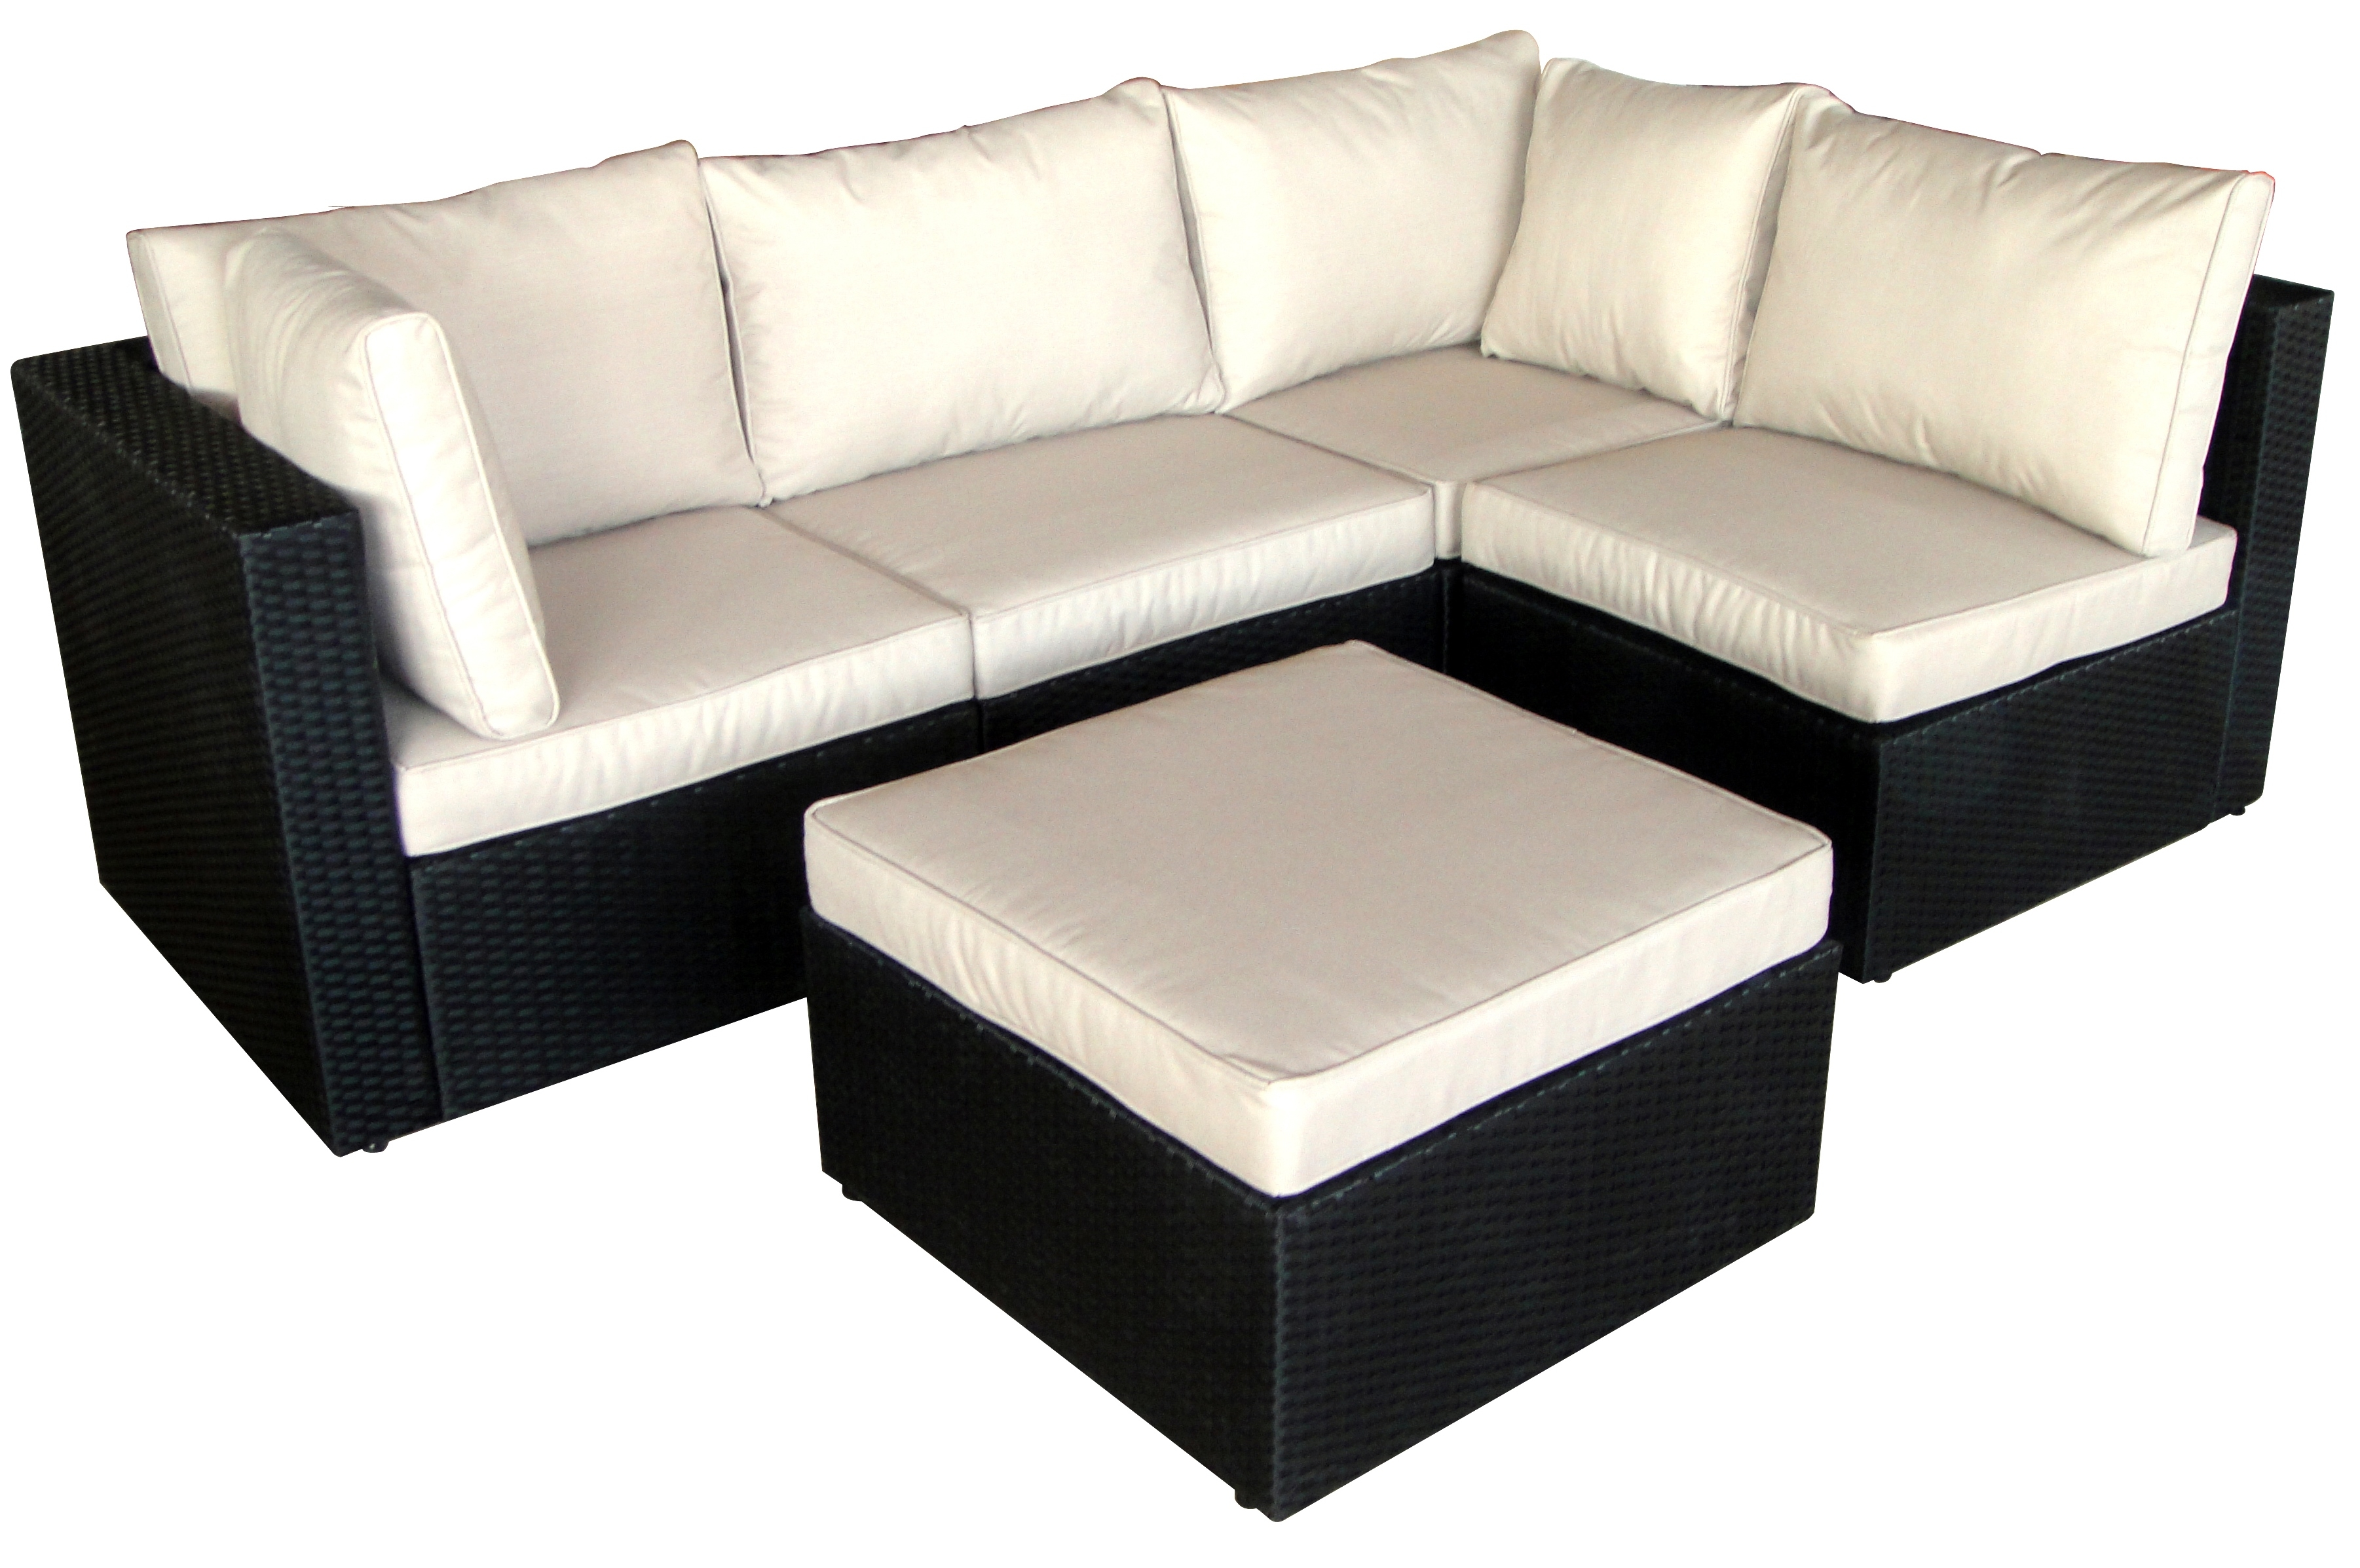 salon de jardin 5 places modulable coussin cru r sine. Black Bedroom Furniture Sets. Home Design Ideas